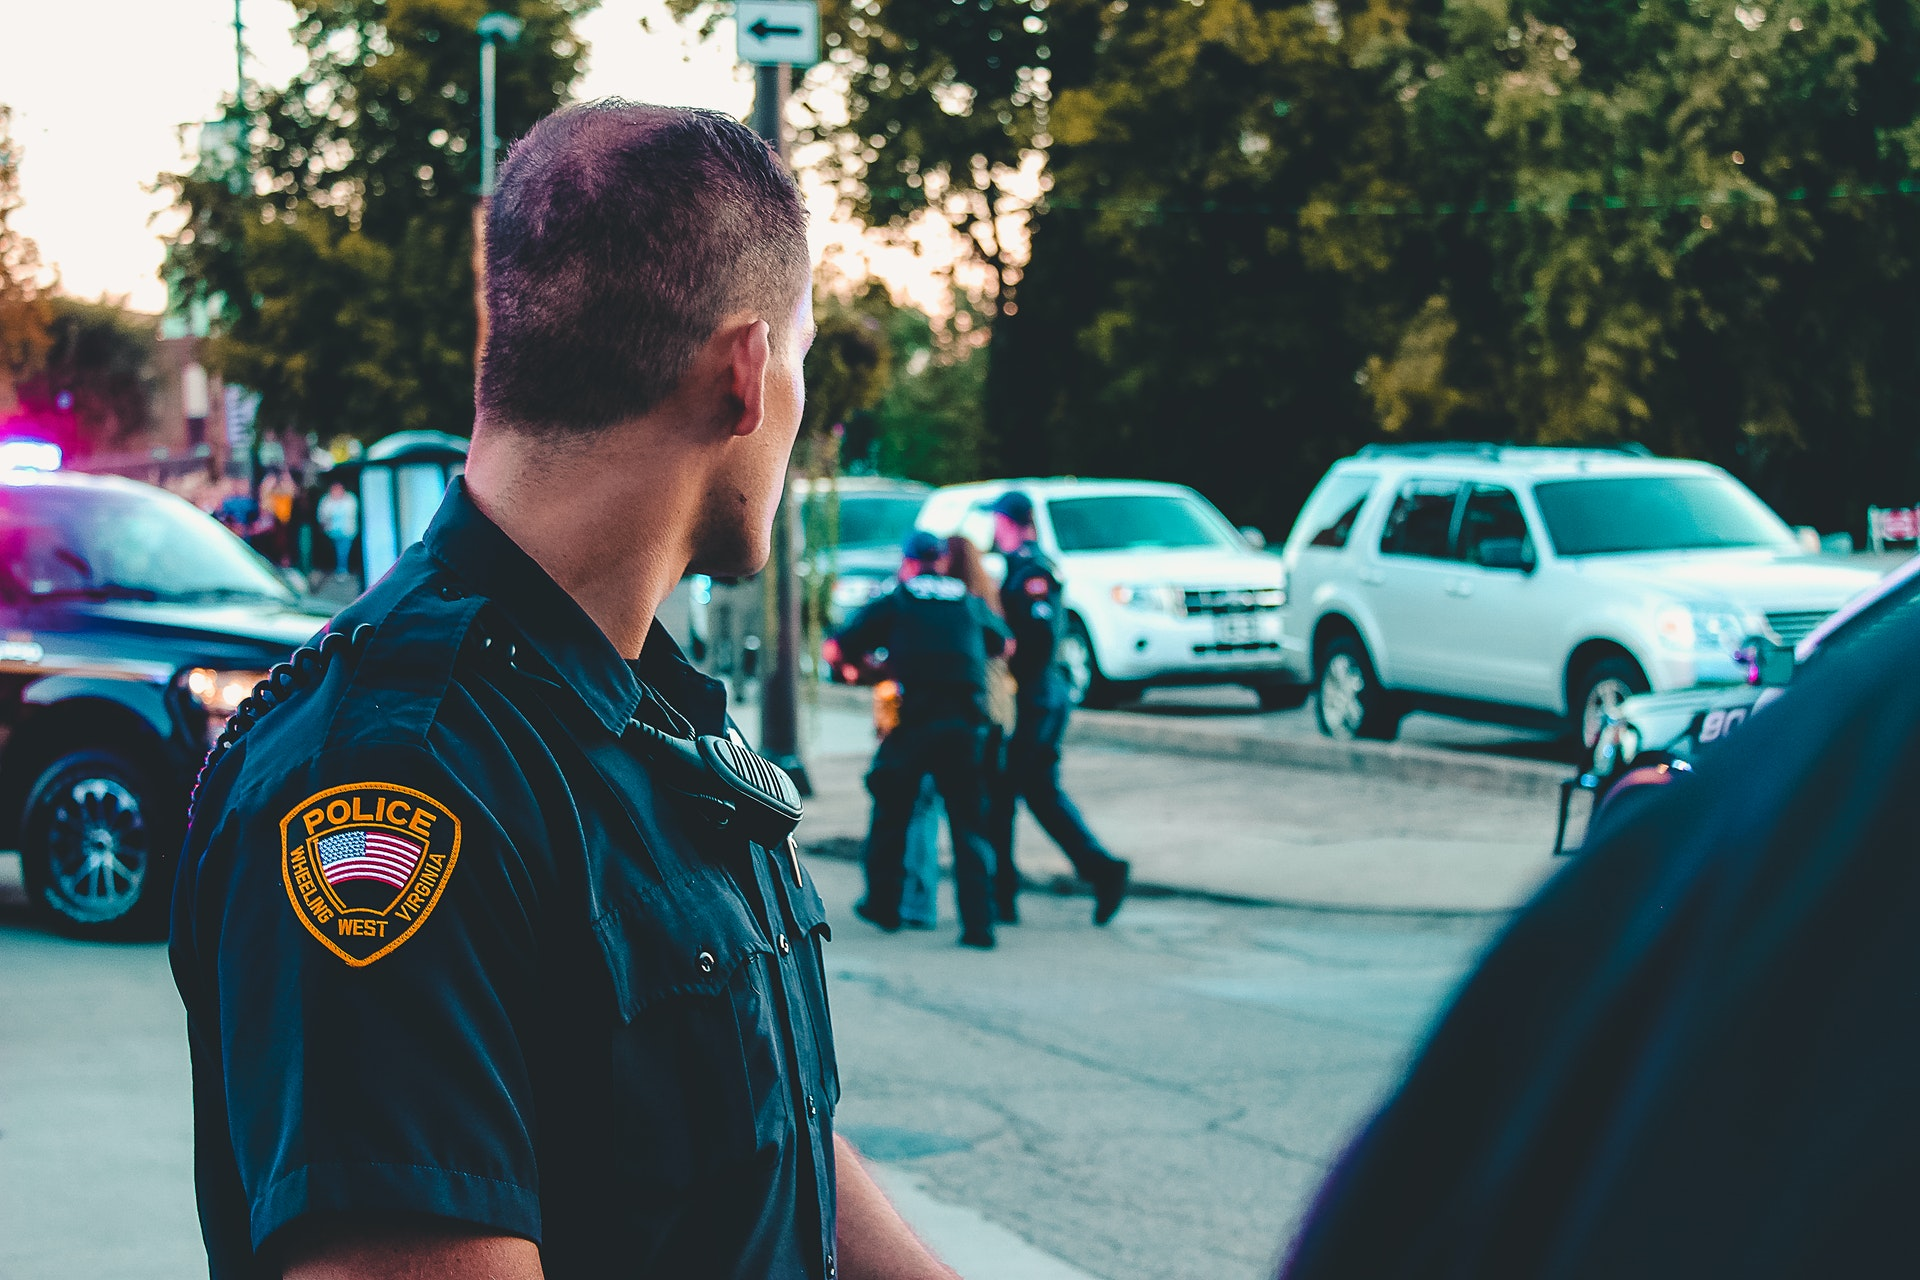 Why Should You Study a Public Safety Degree